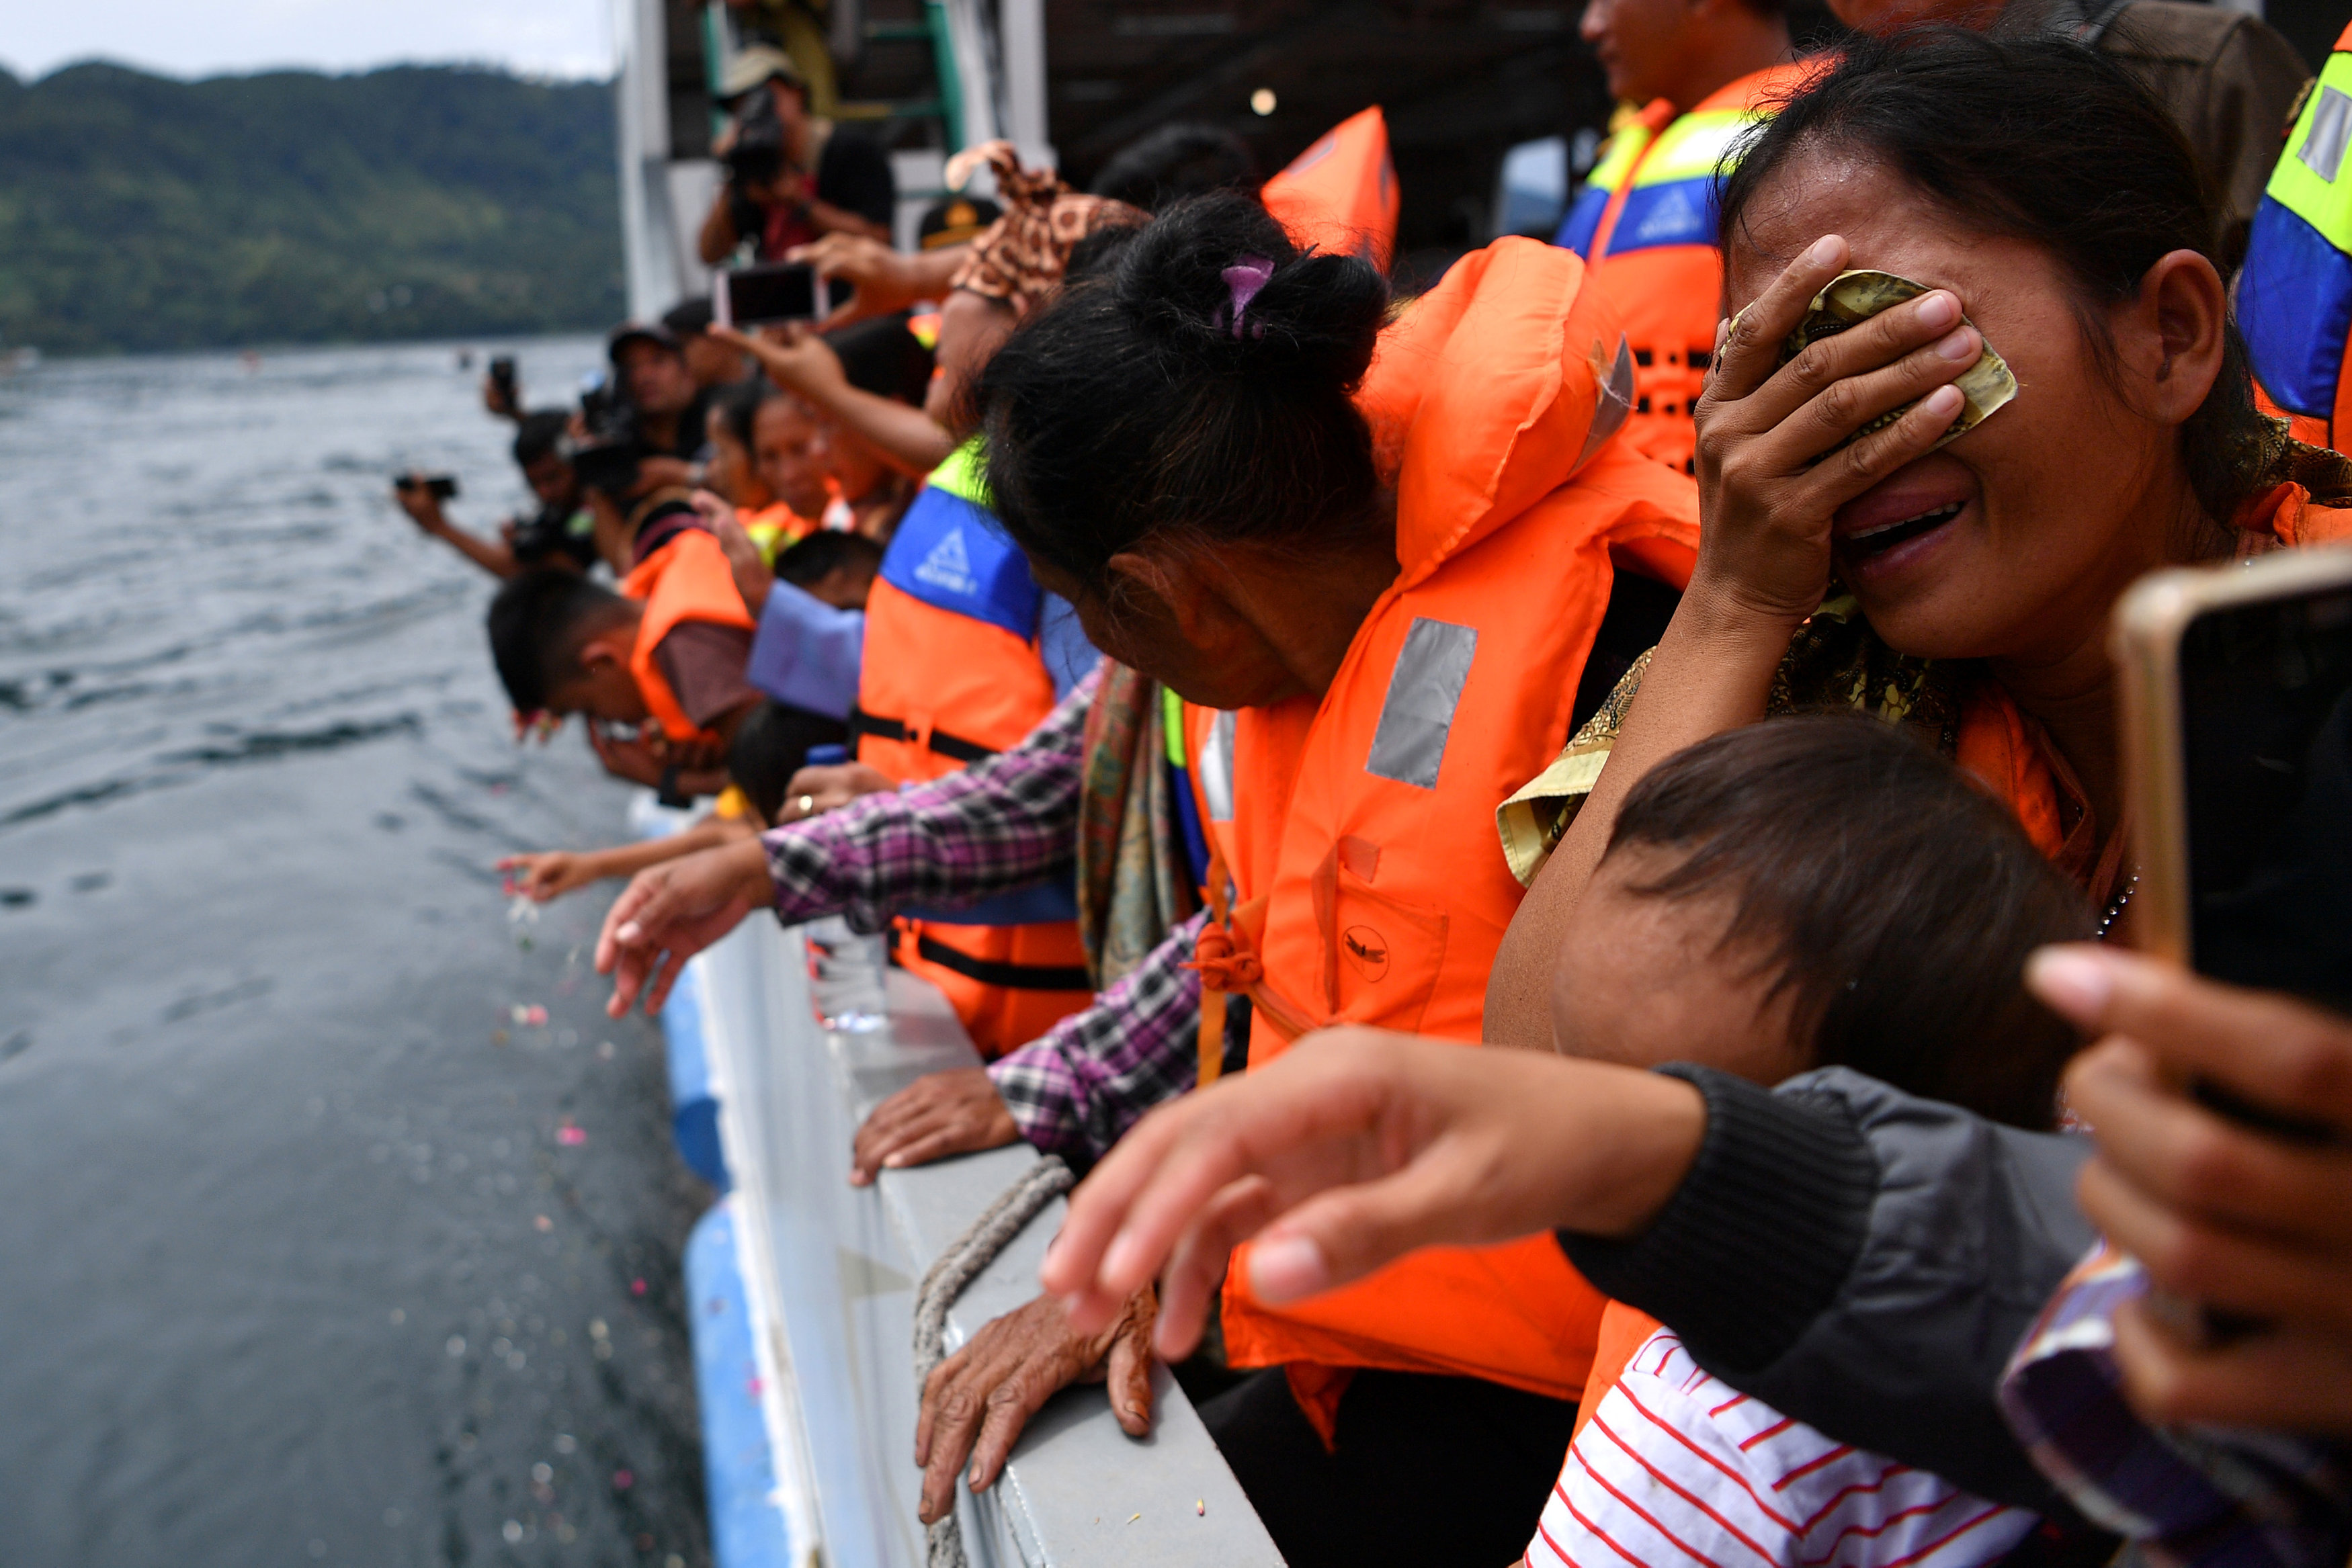 Relatives of missing passengers react during a visit to the location of the ferry that sank at Lake Toba in Simalungun, North Sumatra, Indonesia July 2, 2018. Antara Foto/Sigid Kurniawan/via REUTERS